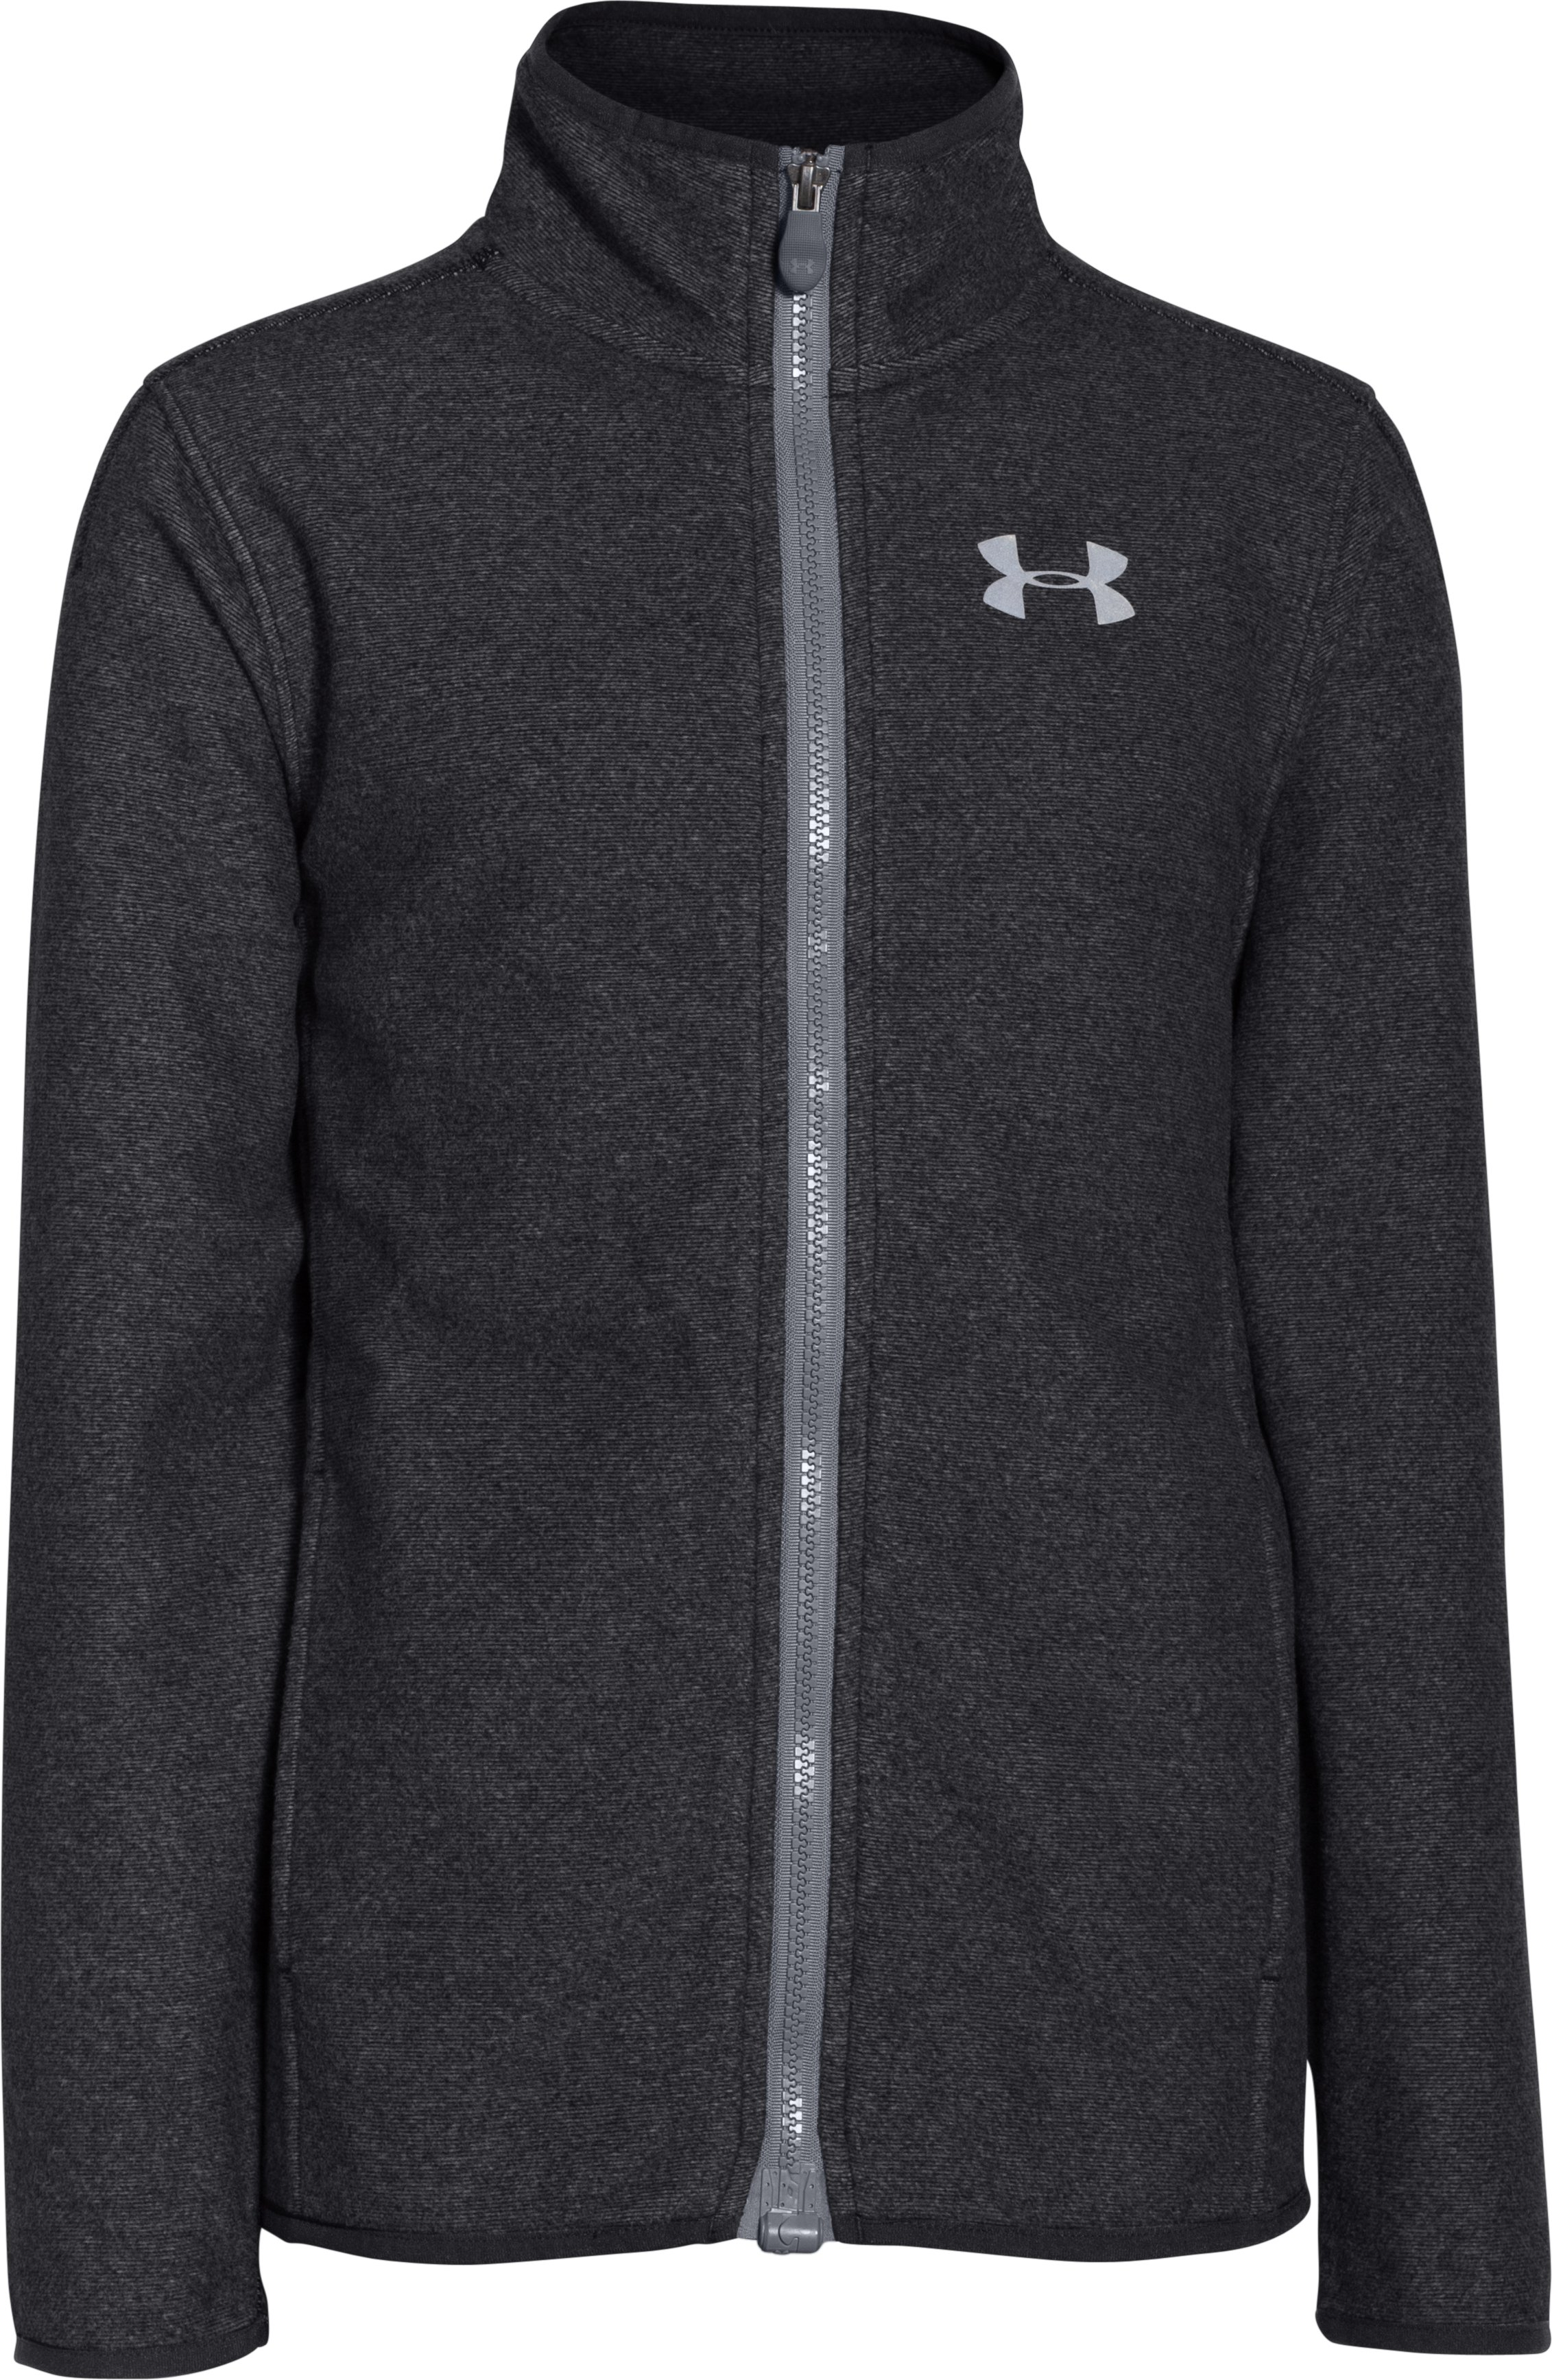 Boys' UA ColdGear® Infrared Performance Fleece Jacket, Black